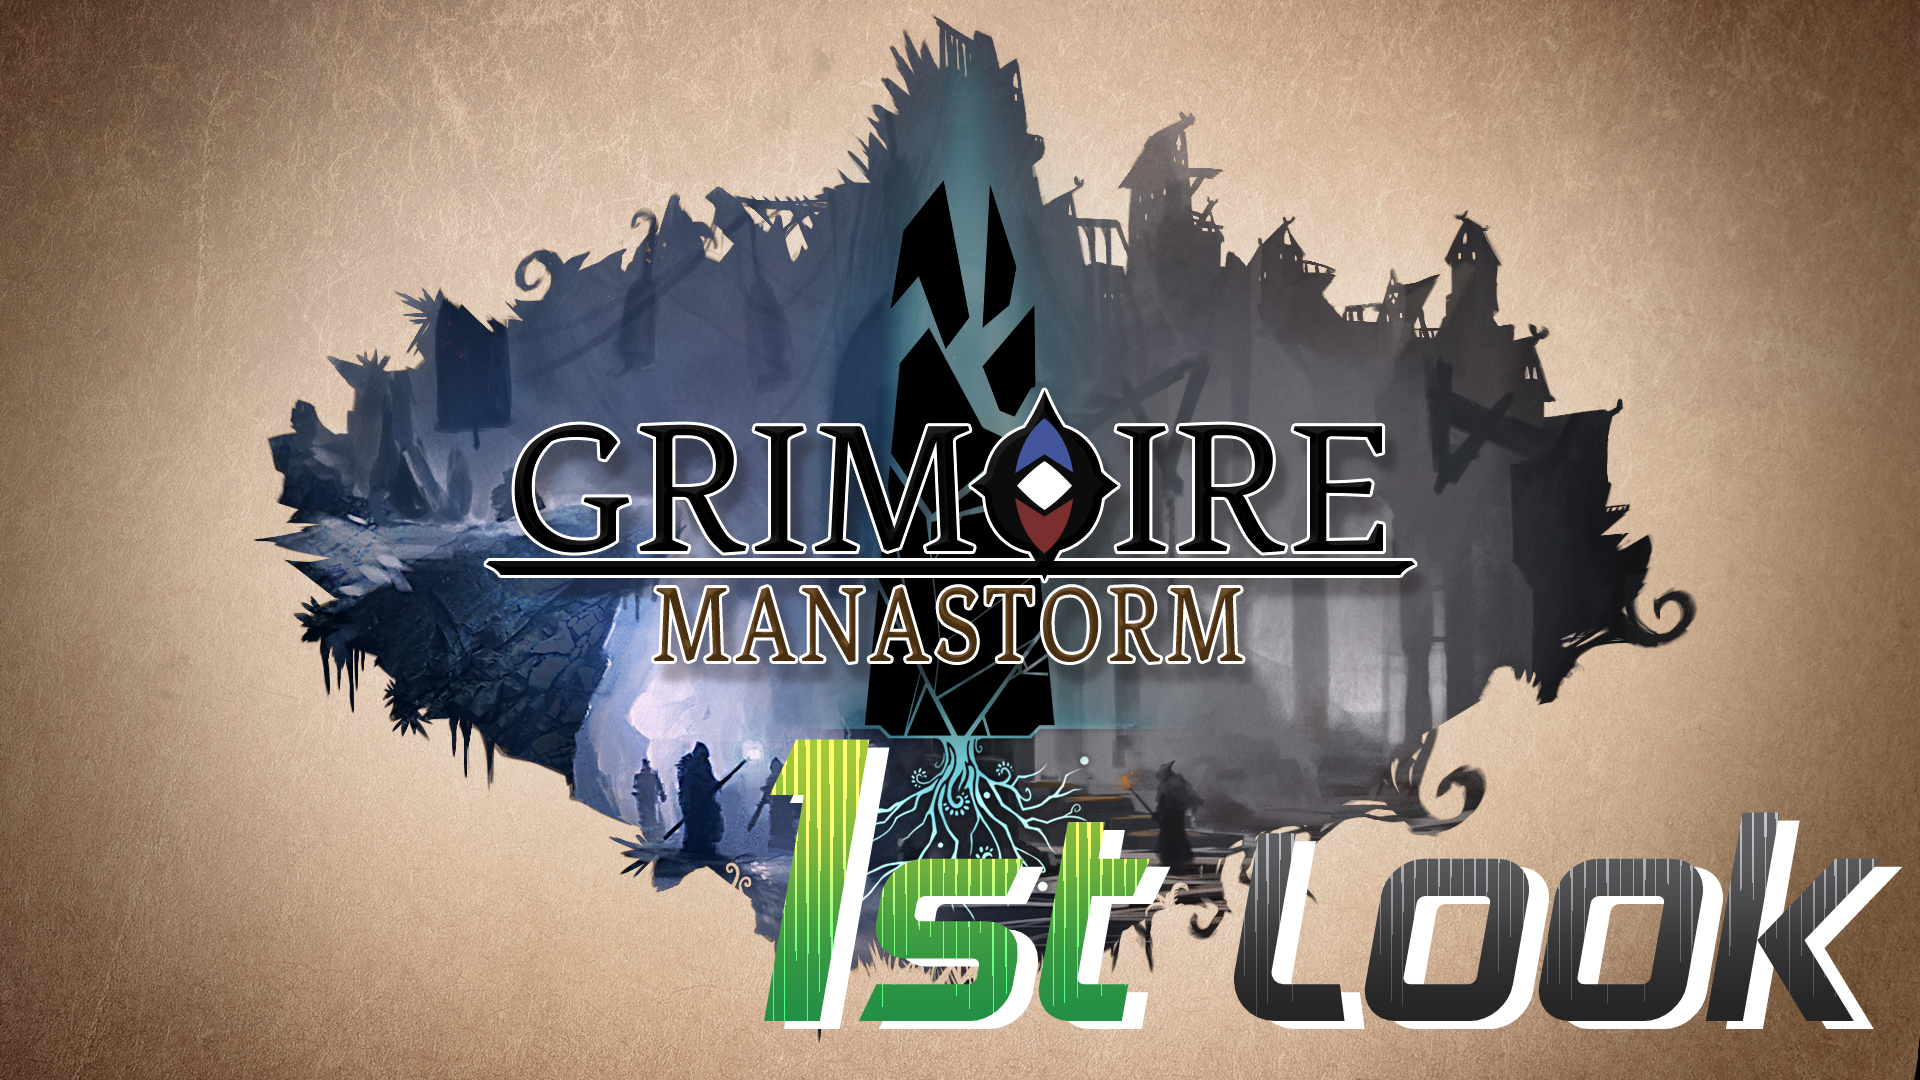 Colt takes a first look at Grimoire: Manastorm